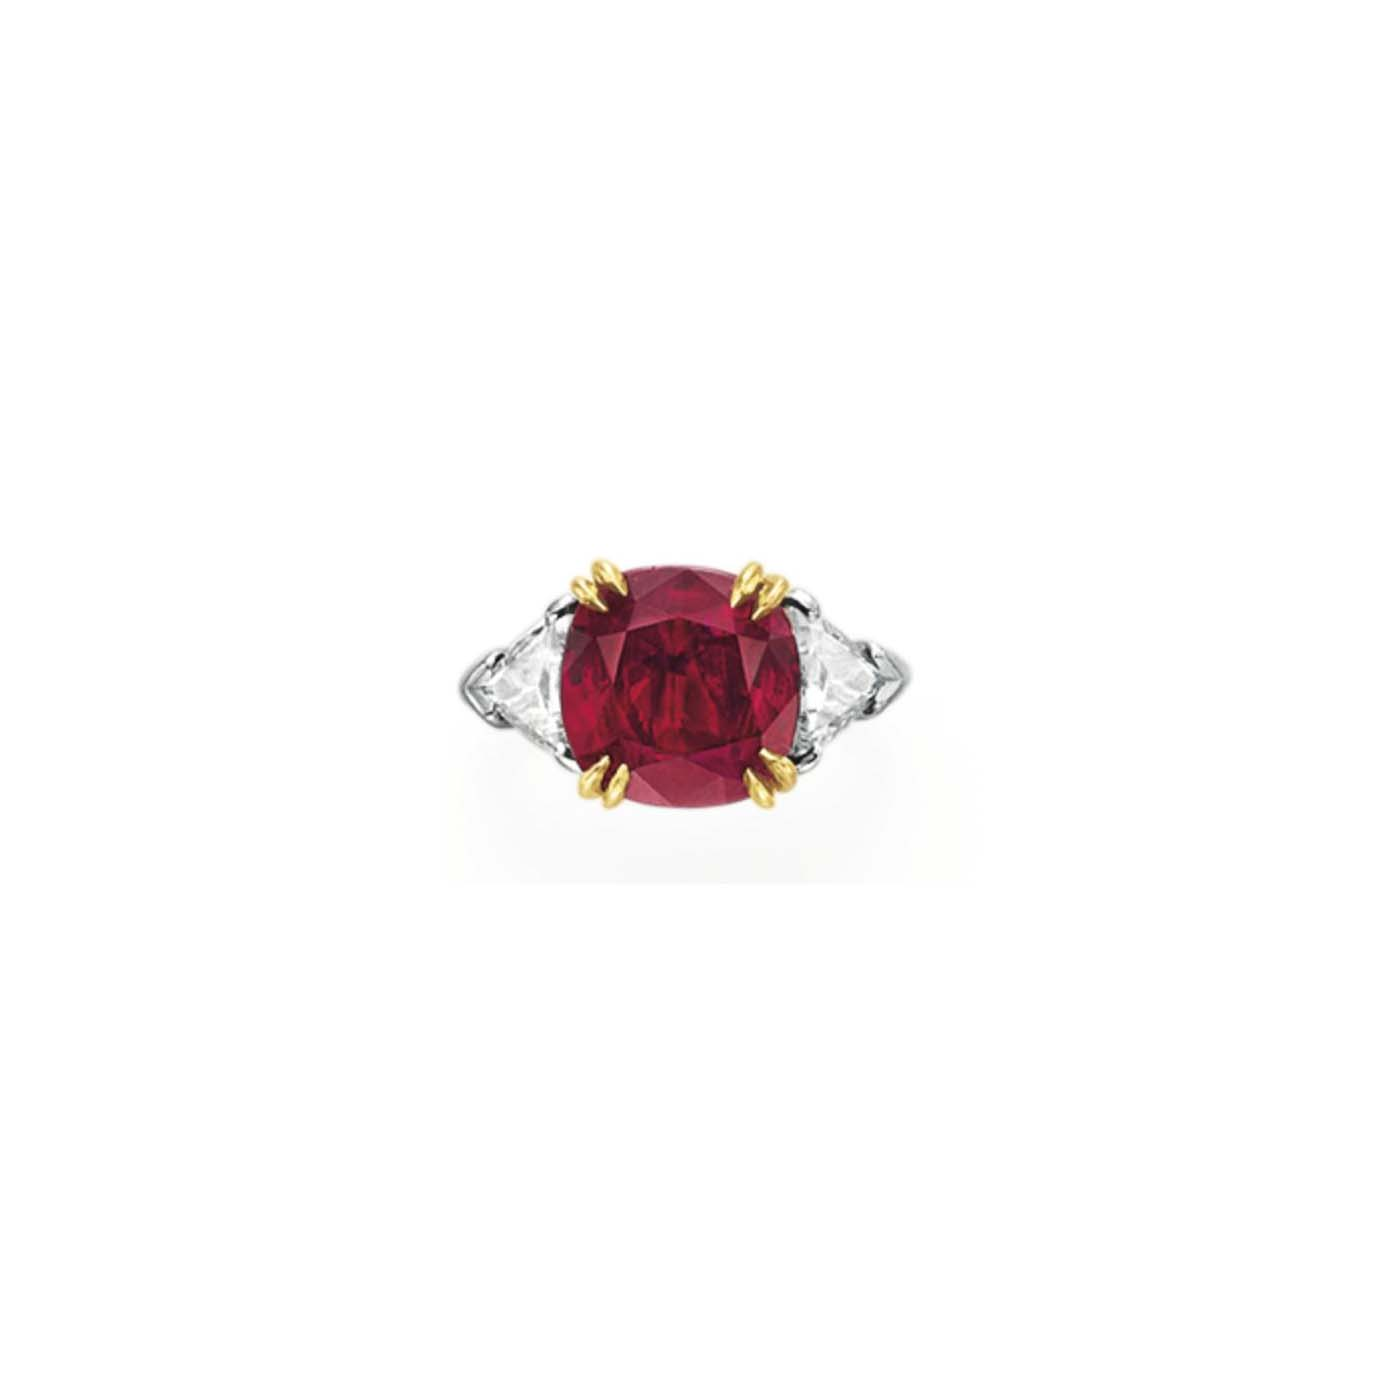 A RUBY AND DIAMOND RING, BY HARRY WINSTON